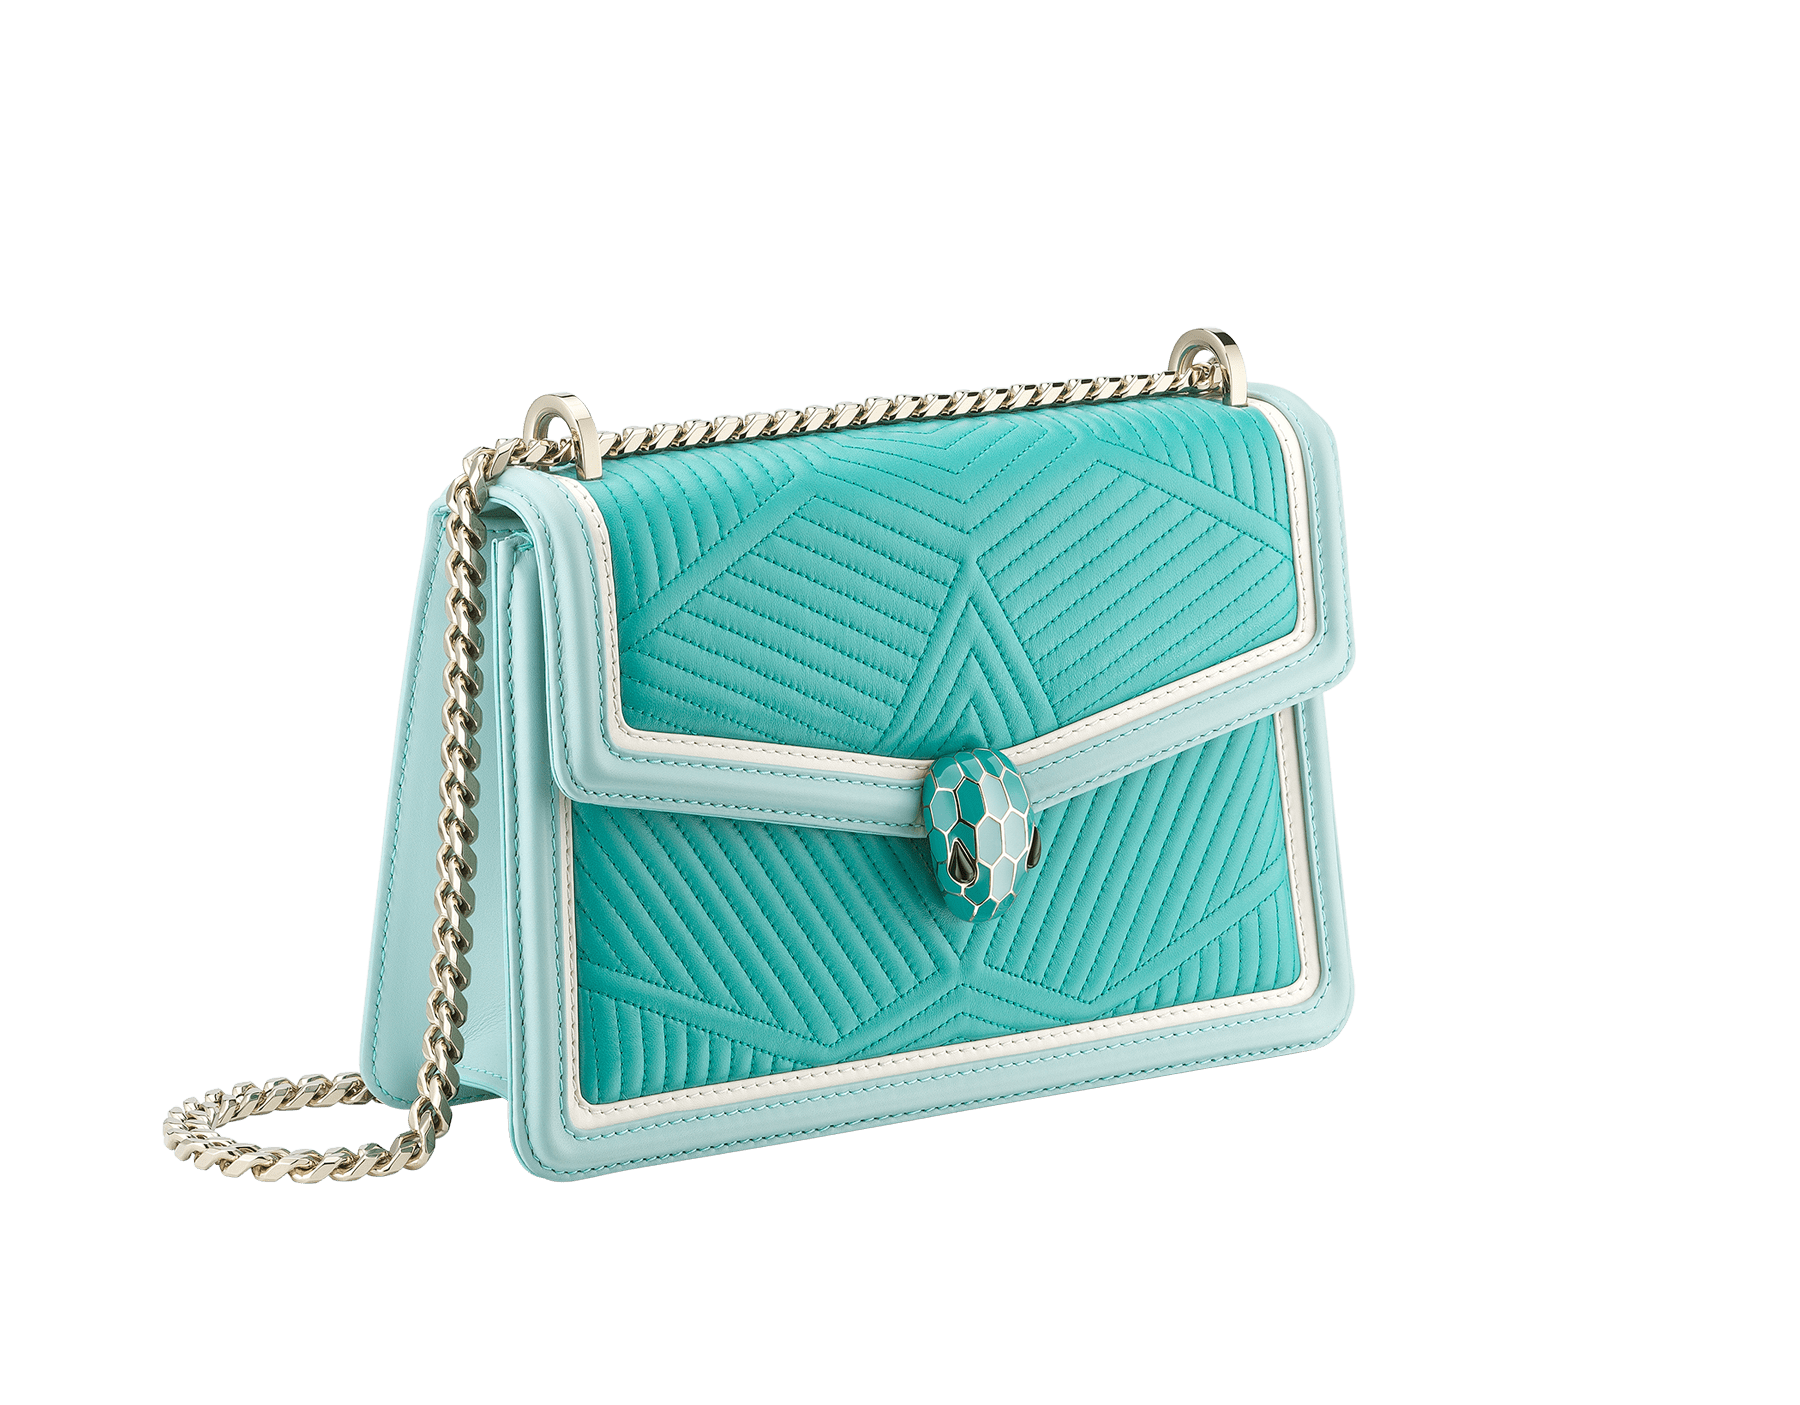 """Serpenti Diamond Blast"" shoulder bag in arctic jade quilted nappa leather and with glacier turquoise and white agate smooth calf leather frames. Iconic snakehead closure in light gold plated brass enriched with arctic jade and glacier turquoise enamel and black onyx eyes. 288824 image 2"